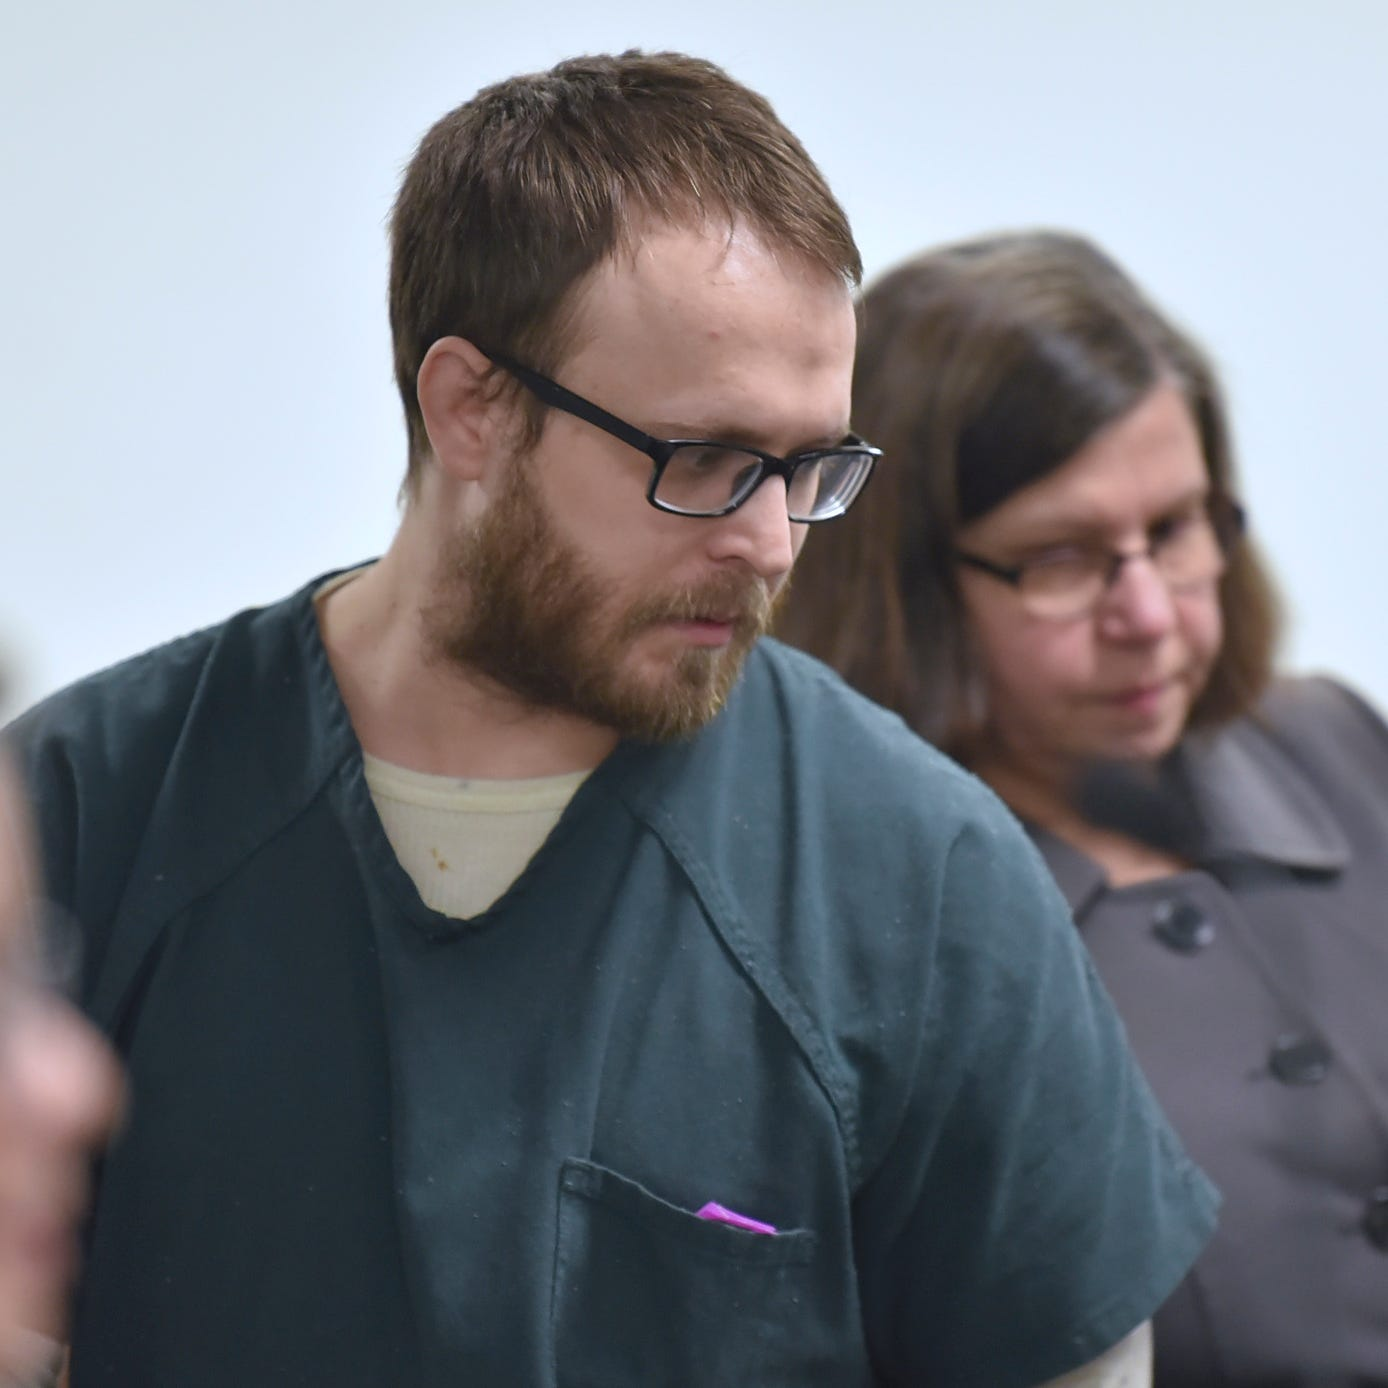 St. Clair Shores man gets 30 years in girlfriend's slaying